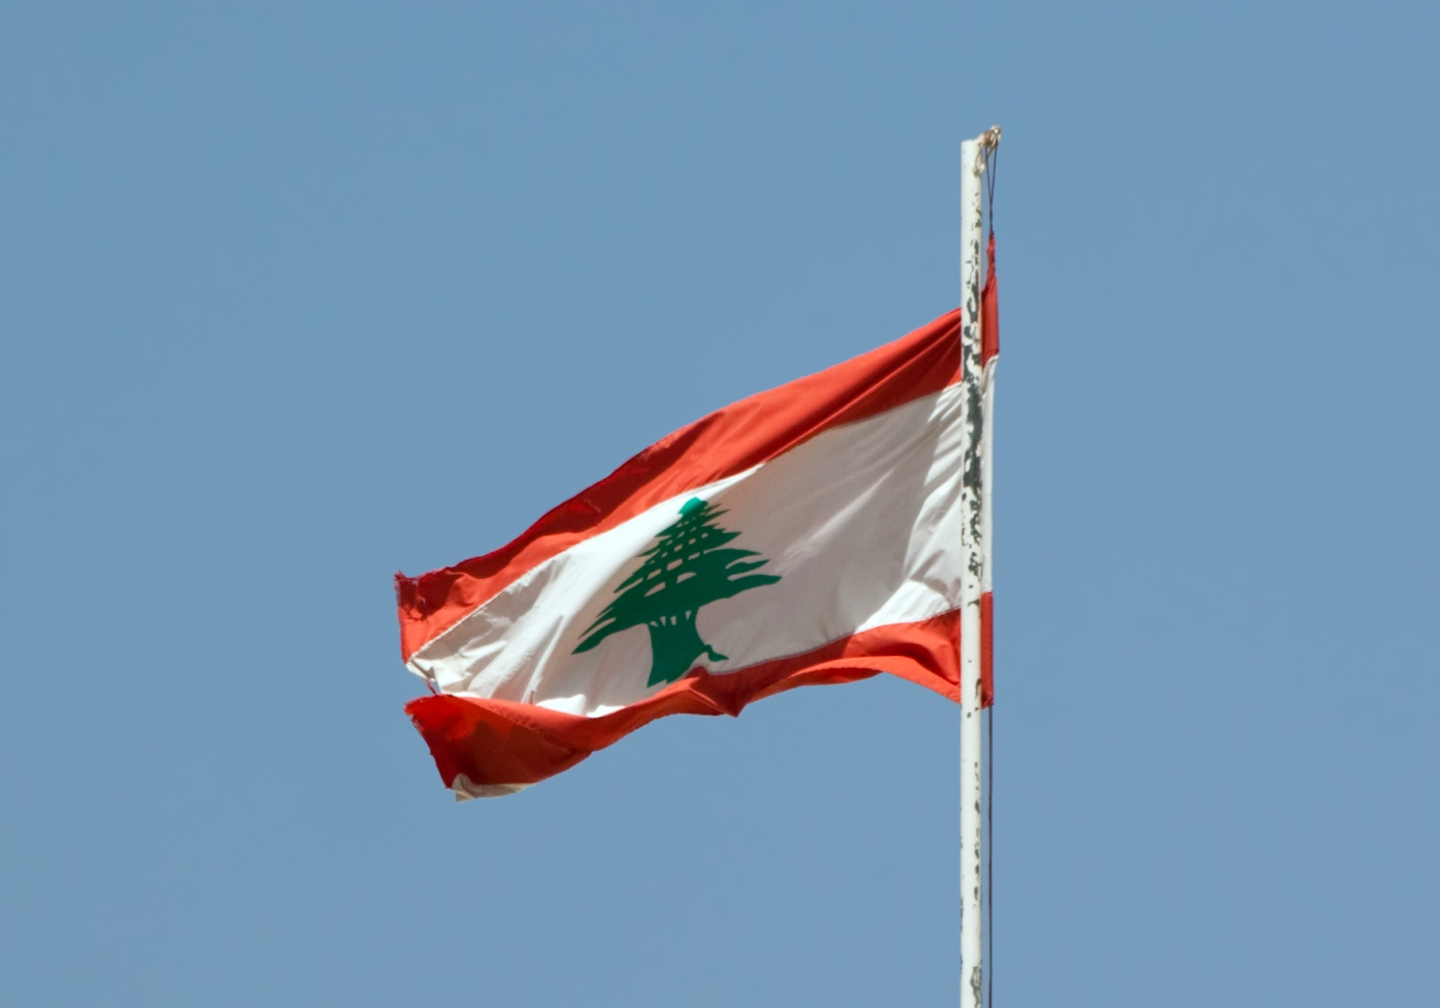 The Lebanese flag floating over the palace of Beit ed-Dine.